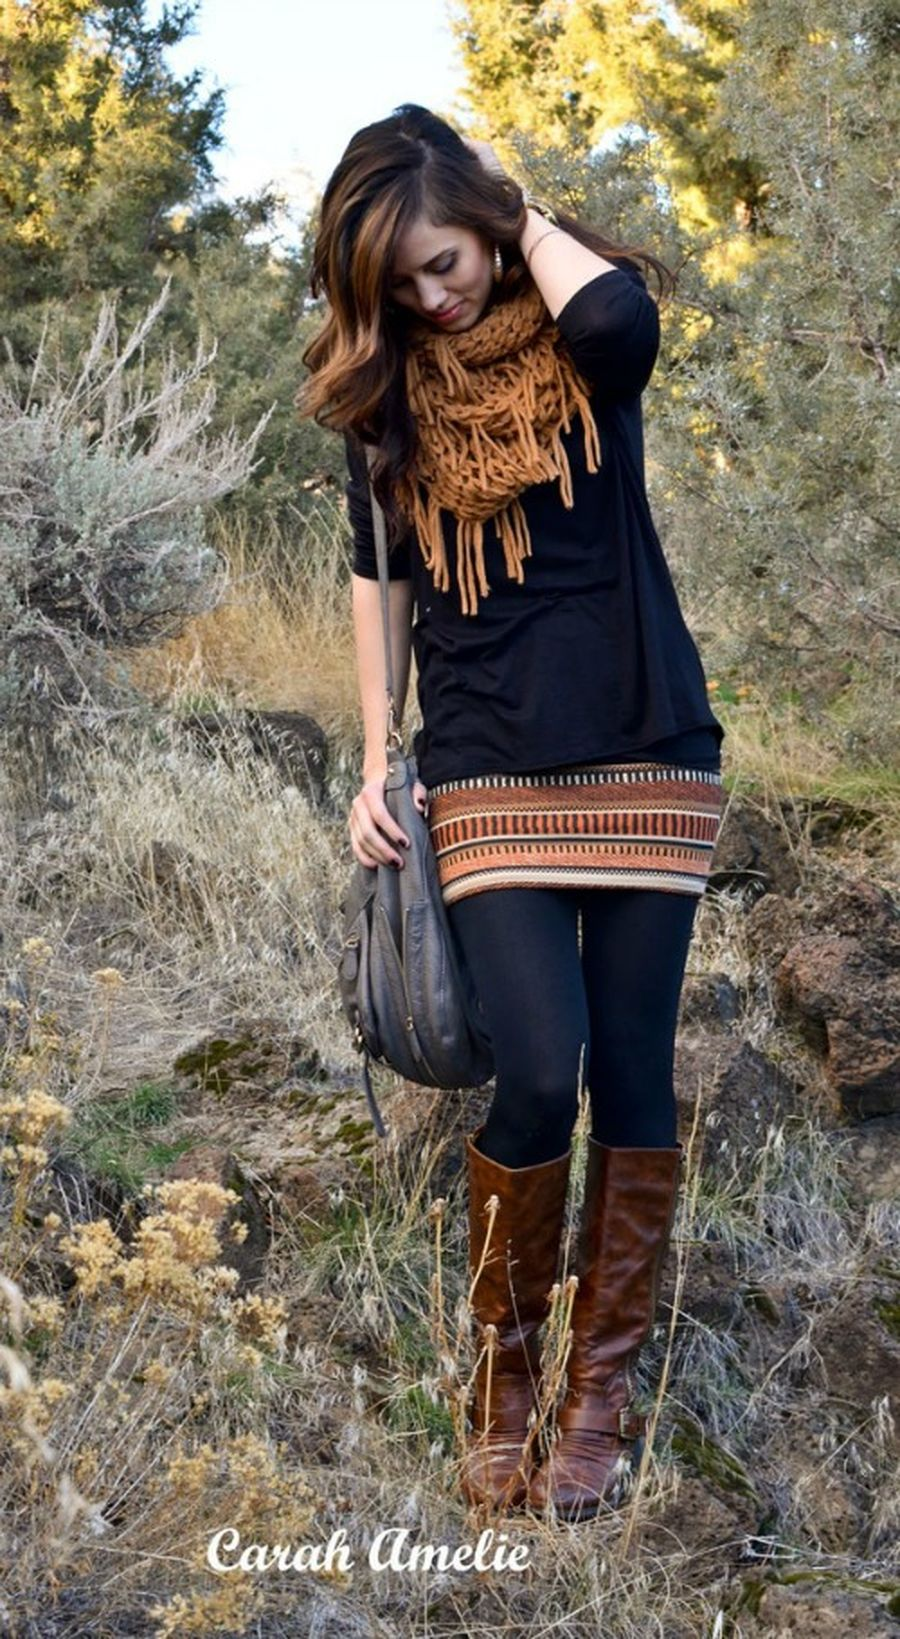 Inspiring skirt and boots combinations for fall and winter outfits 82